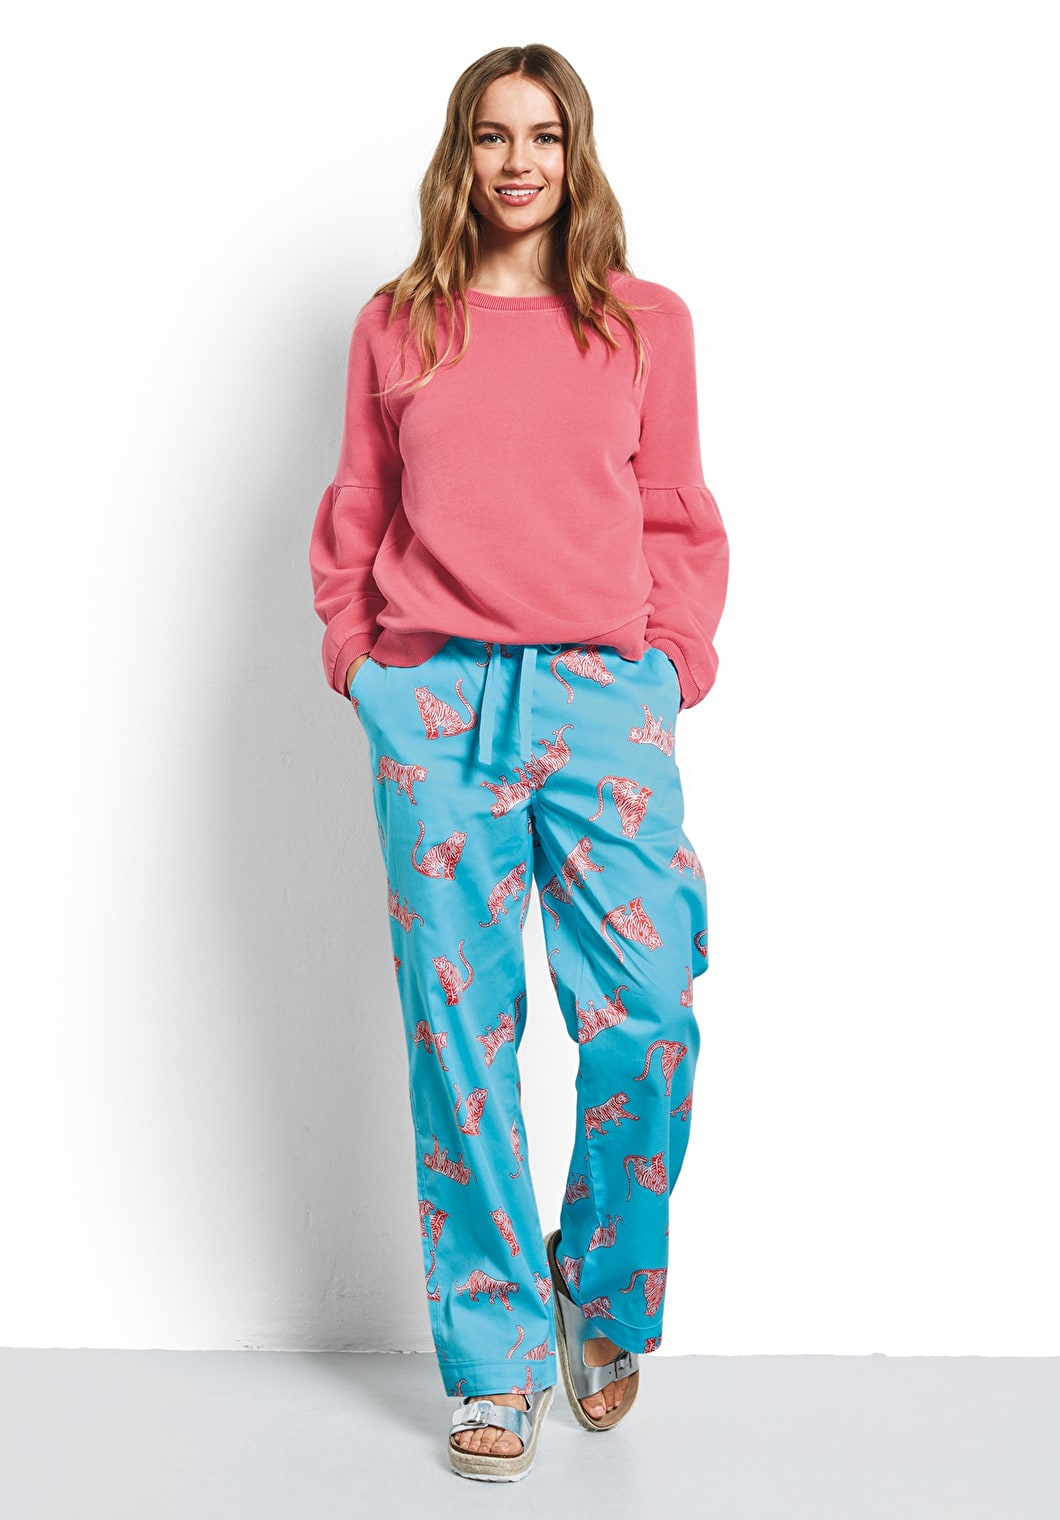 Model wears our Tiger print cotton pyjama trousers in radiance and coral